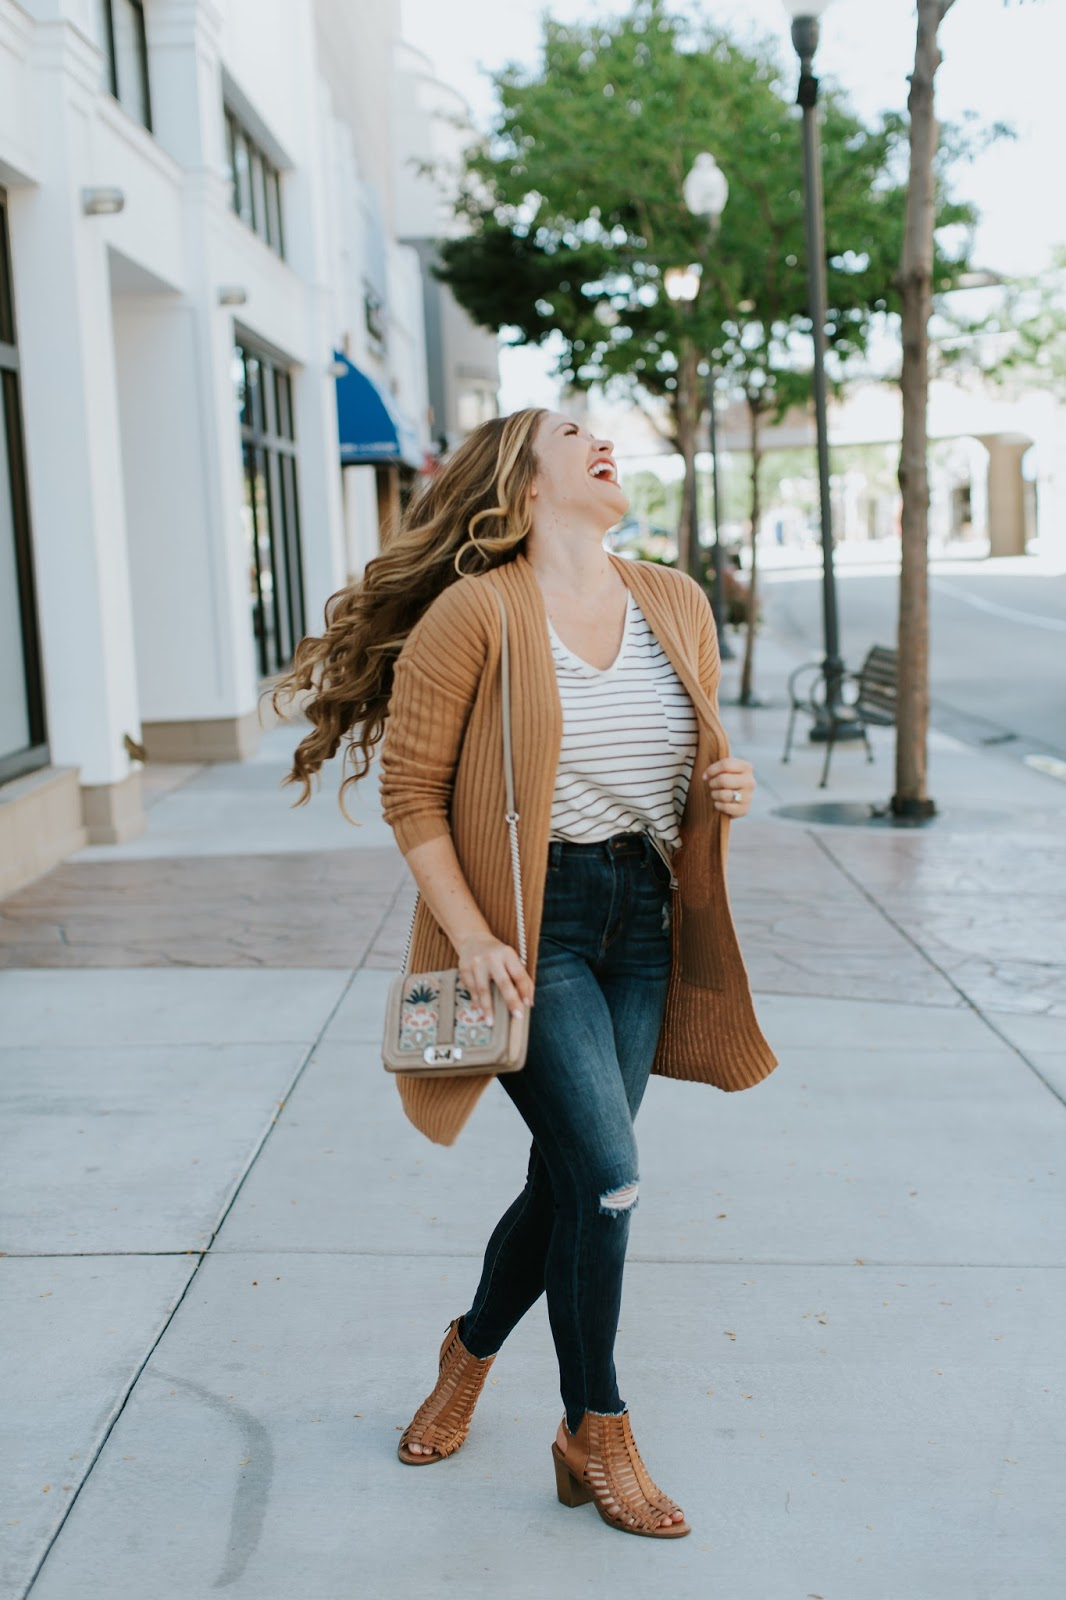 Trend Spin Linkup - Transtional Style for Fall Fashion by fashion blogger Walking in Memphis in High Heels